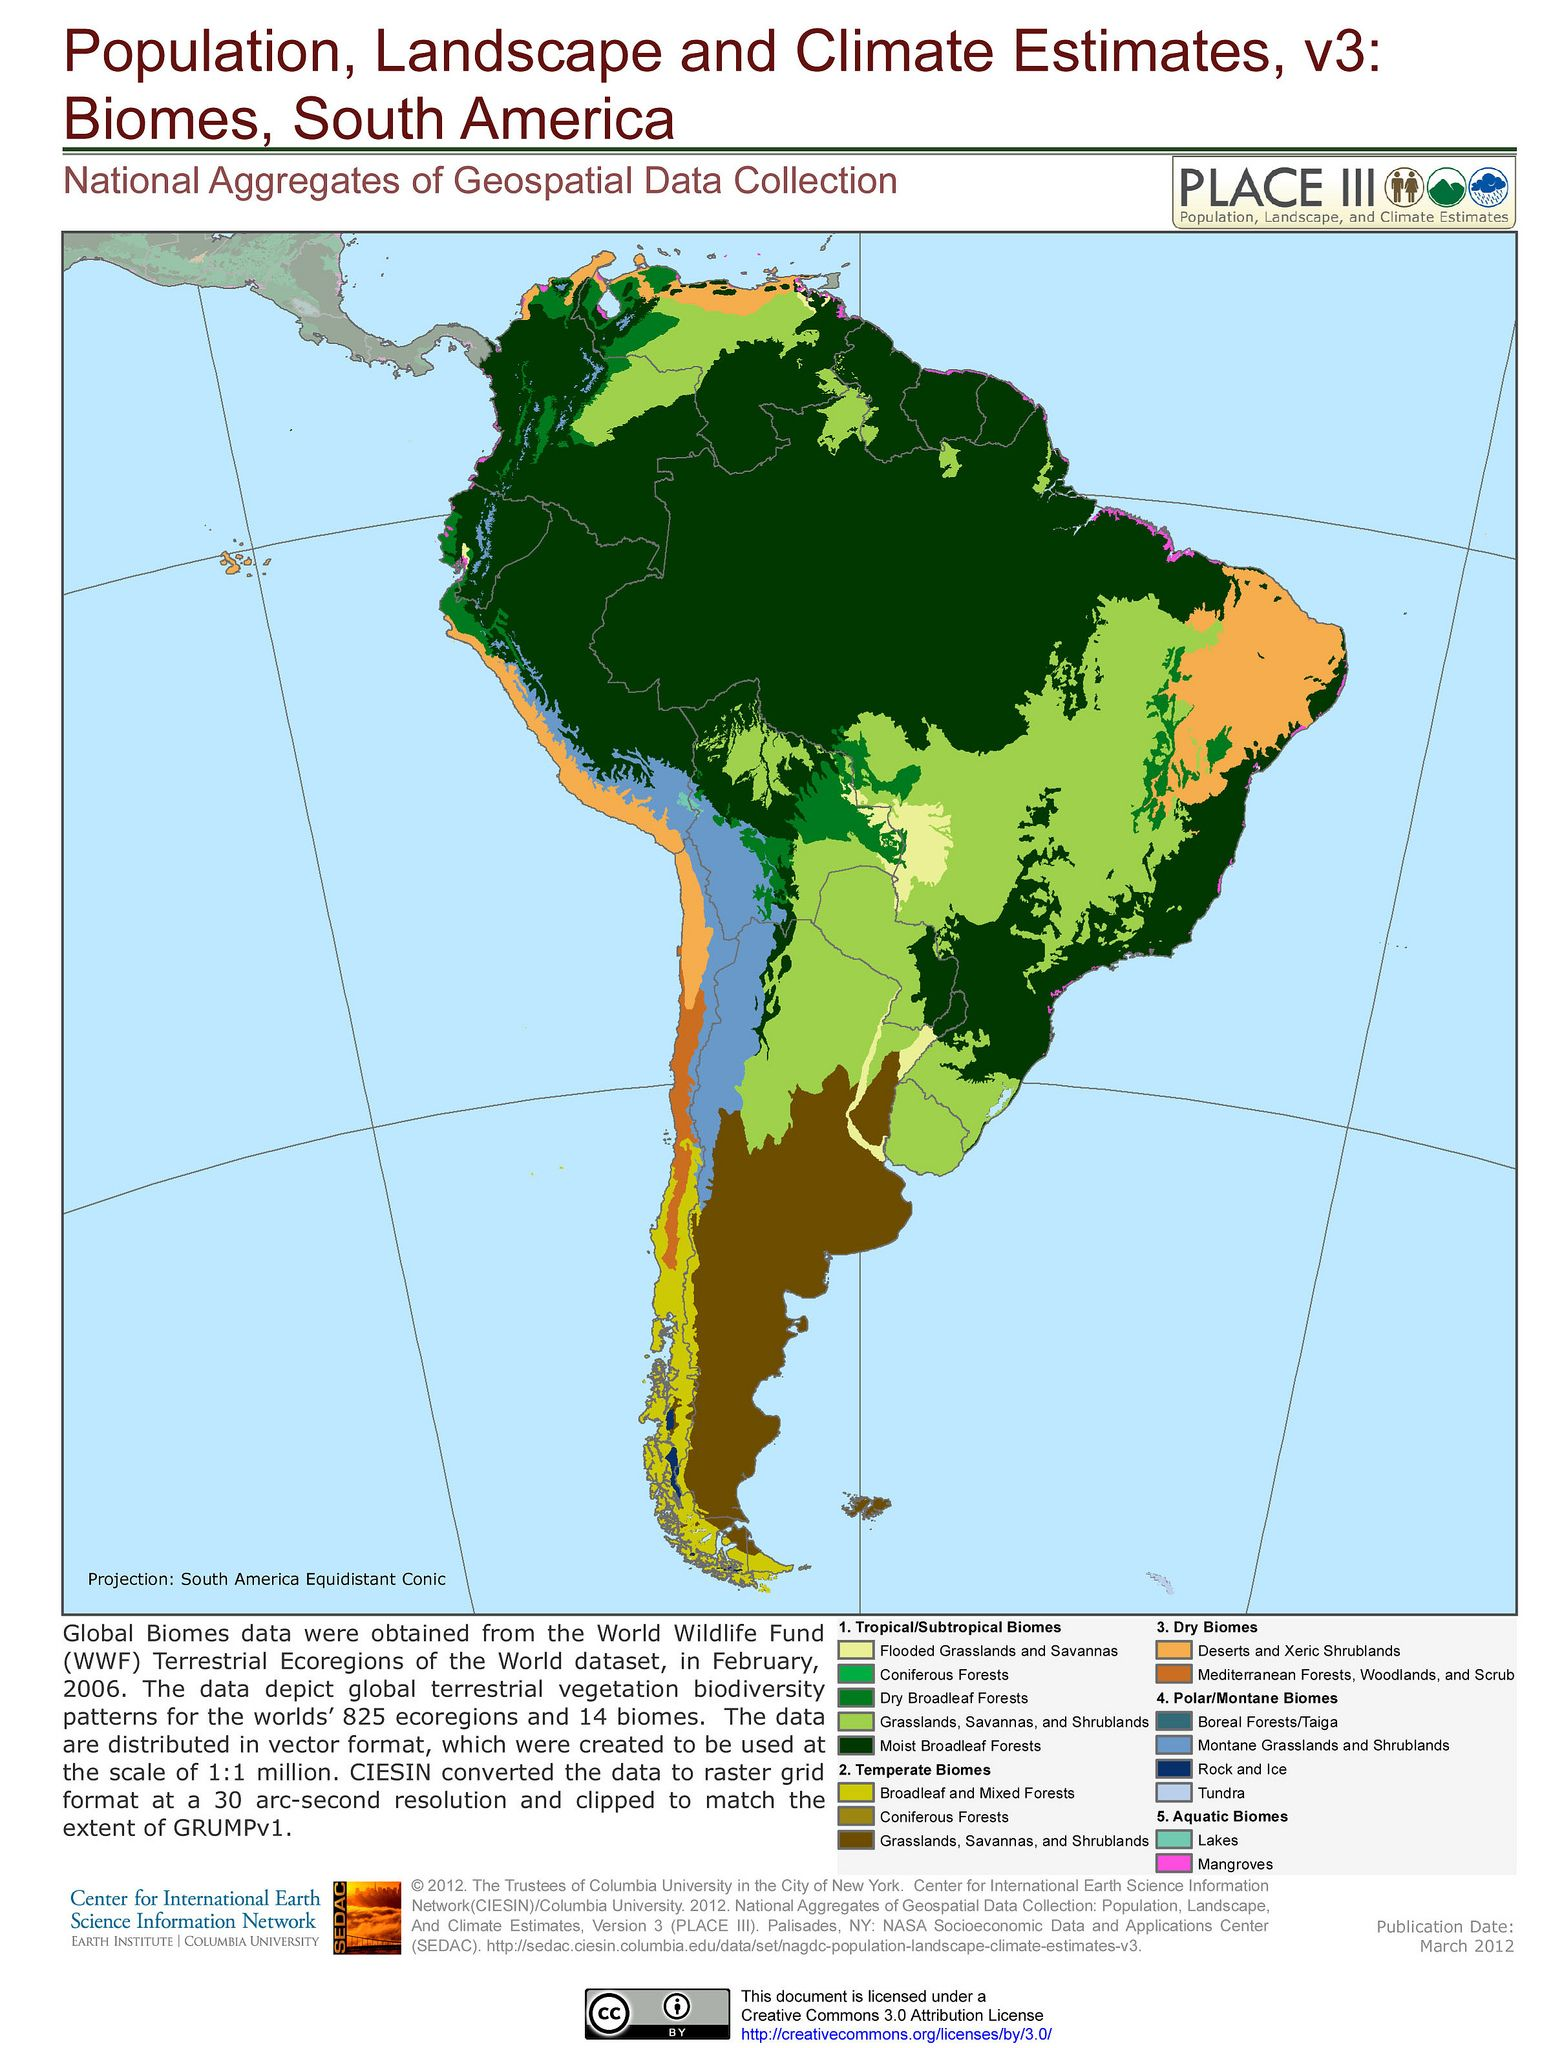 Biomes, South America | REF | GEO - regions | Biomes, South ... on geographic map of modern europe, geographic map of netherlands, geographic map of guadalajara, geographic map of denmark, geographic map of lebanon, geographic map of czech republic, geographic map of san salvador, geographic map of pacific ocean, geographic map of new york state, geographic map of belize, geographic map of serbia, geographic map of arab countries, geographic map of hong kong, geographic map of the caribbean, geographic map of scandinavia, geographic map of far east, geographic map of ghana, geographic map of bahrain, geographic map of japan, geographic map of gobi desert,